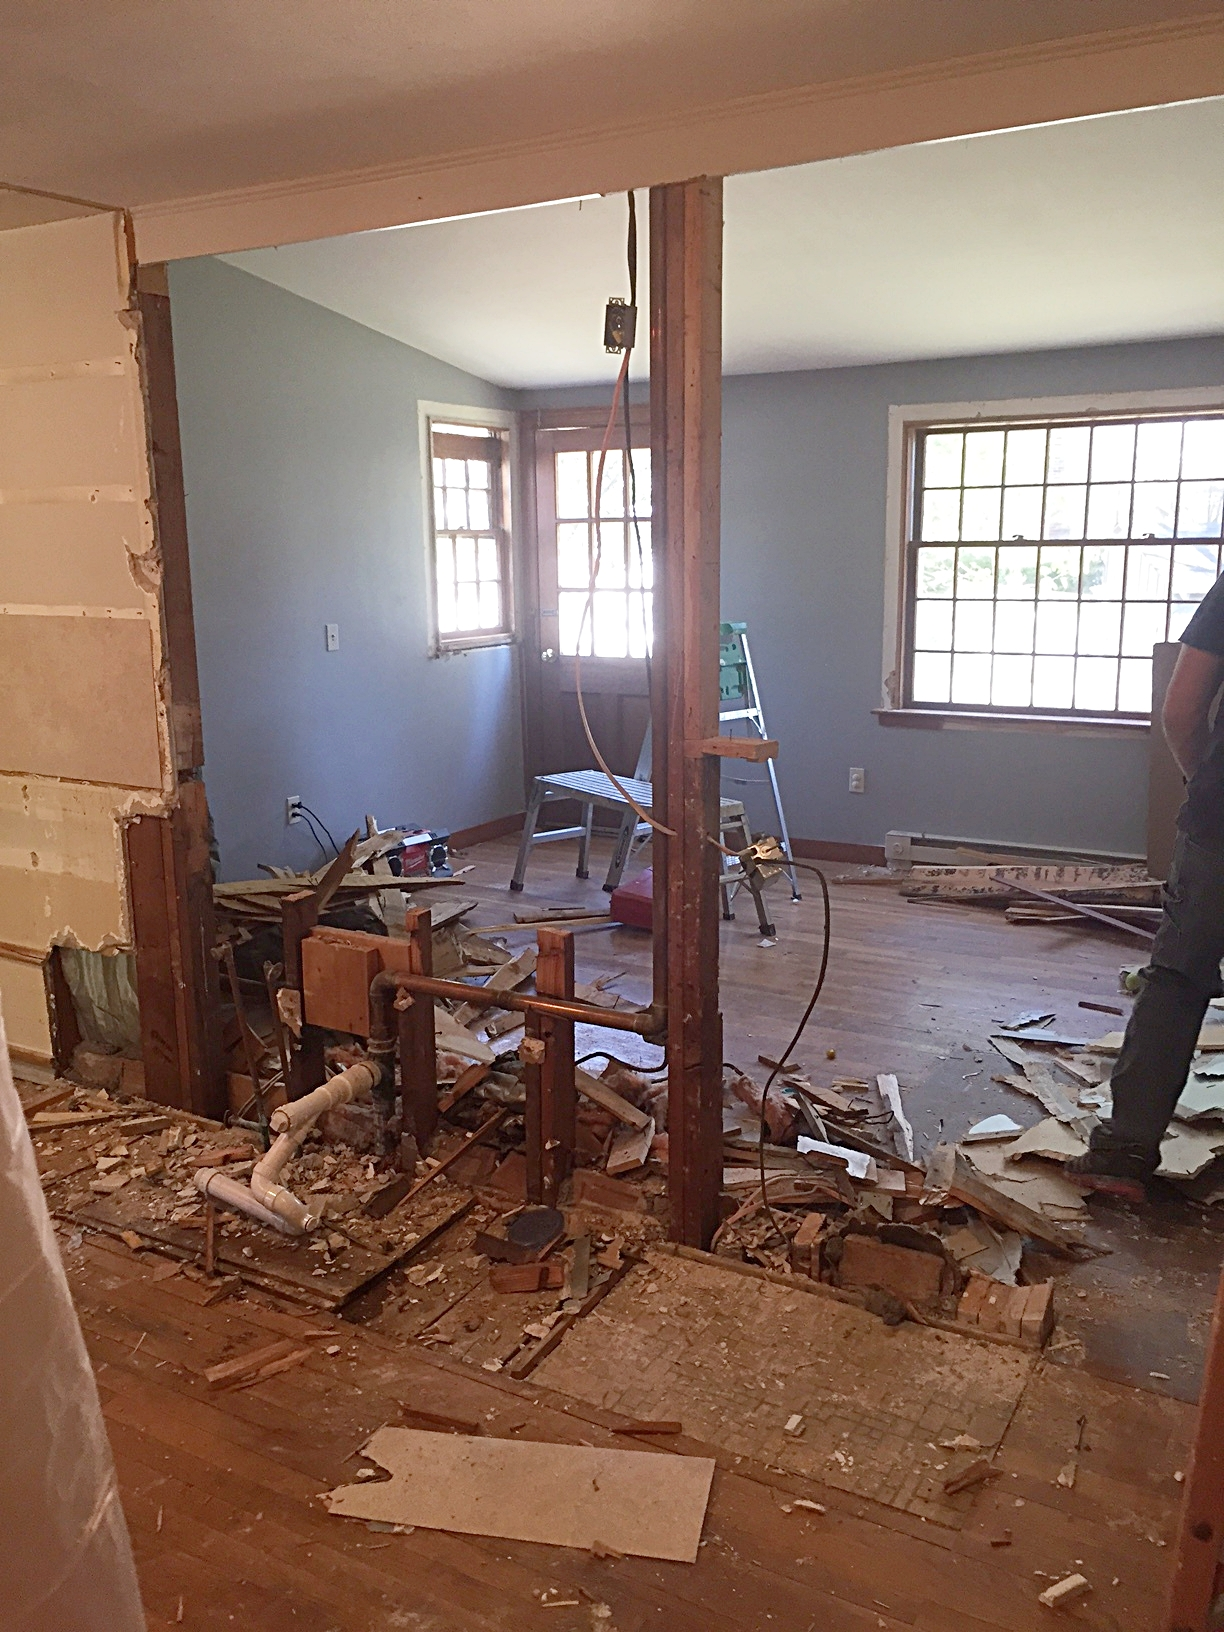 This is looking at what was the kitchen sink and countertop